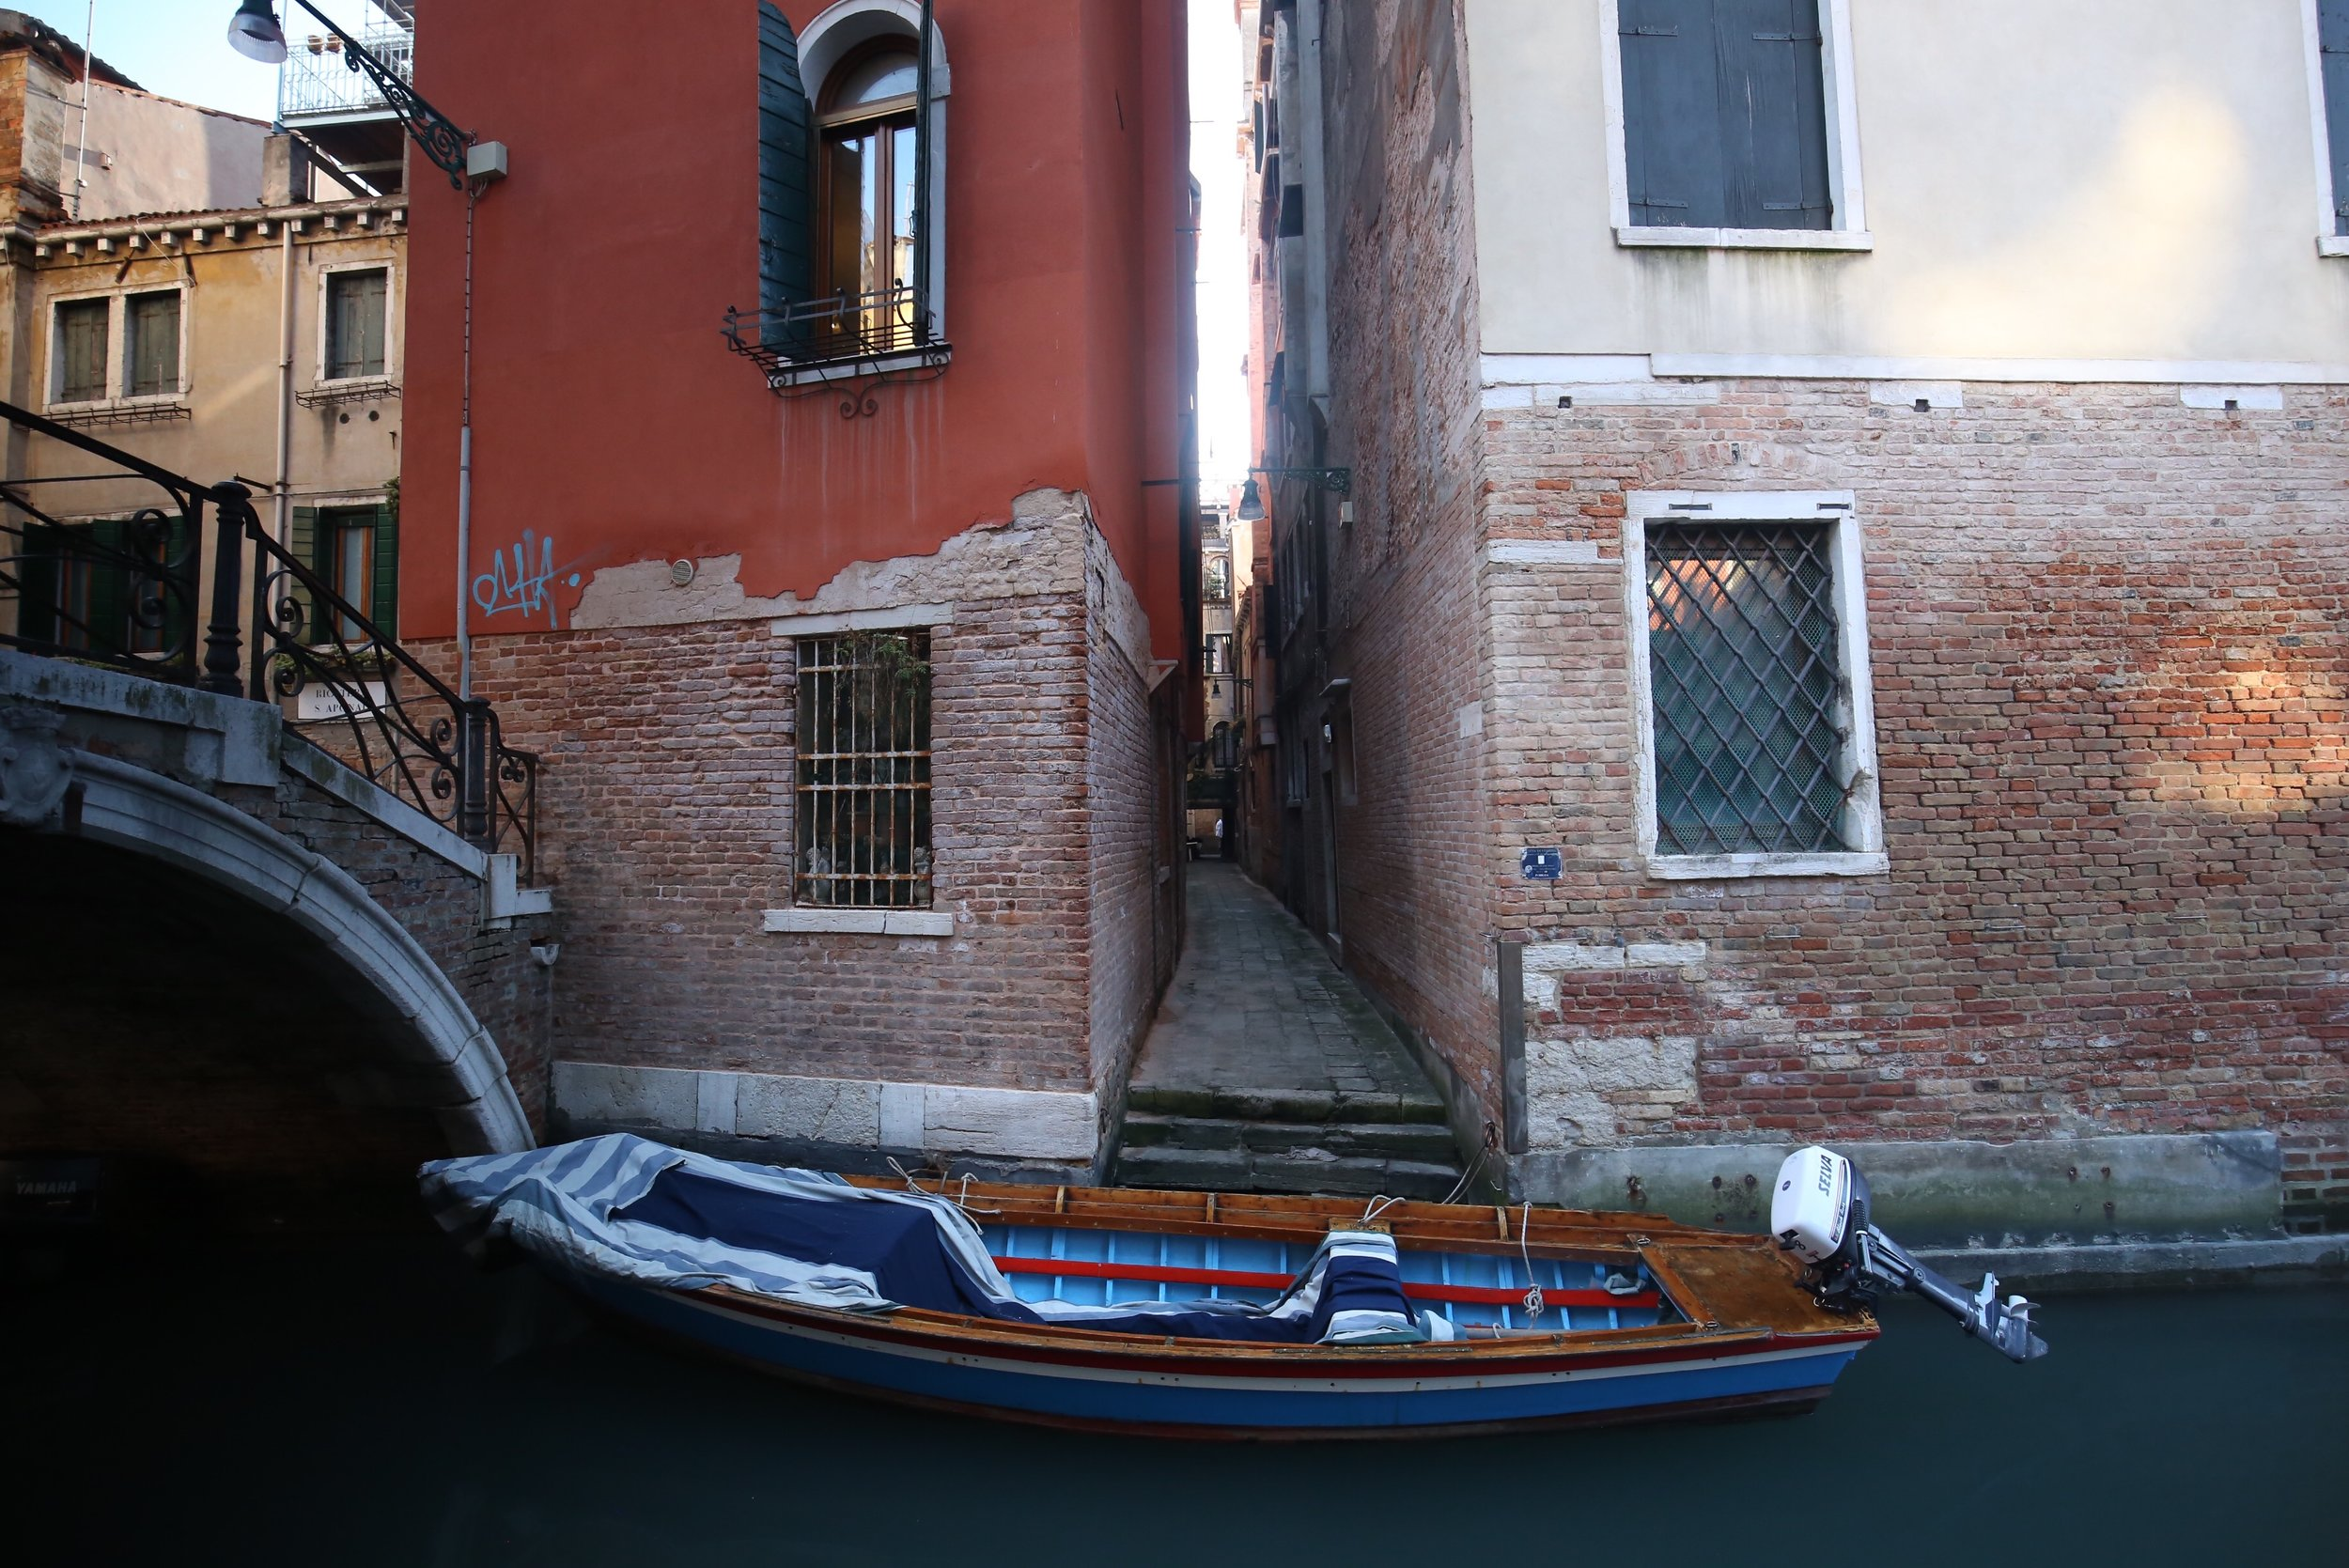 A local's personal boat sits by the canal side under a bridge.